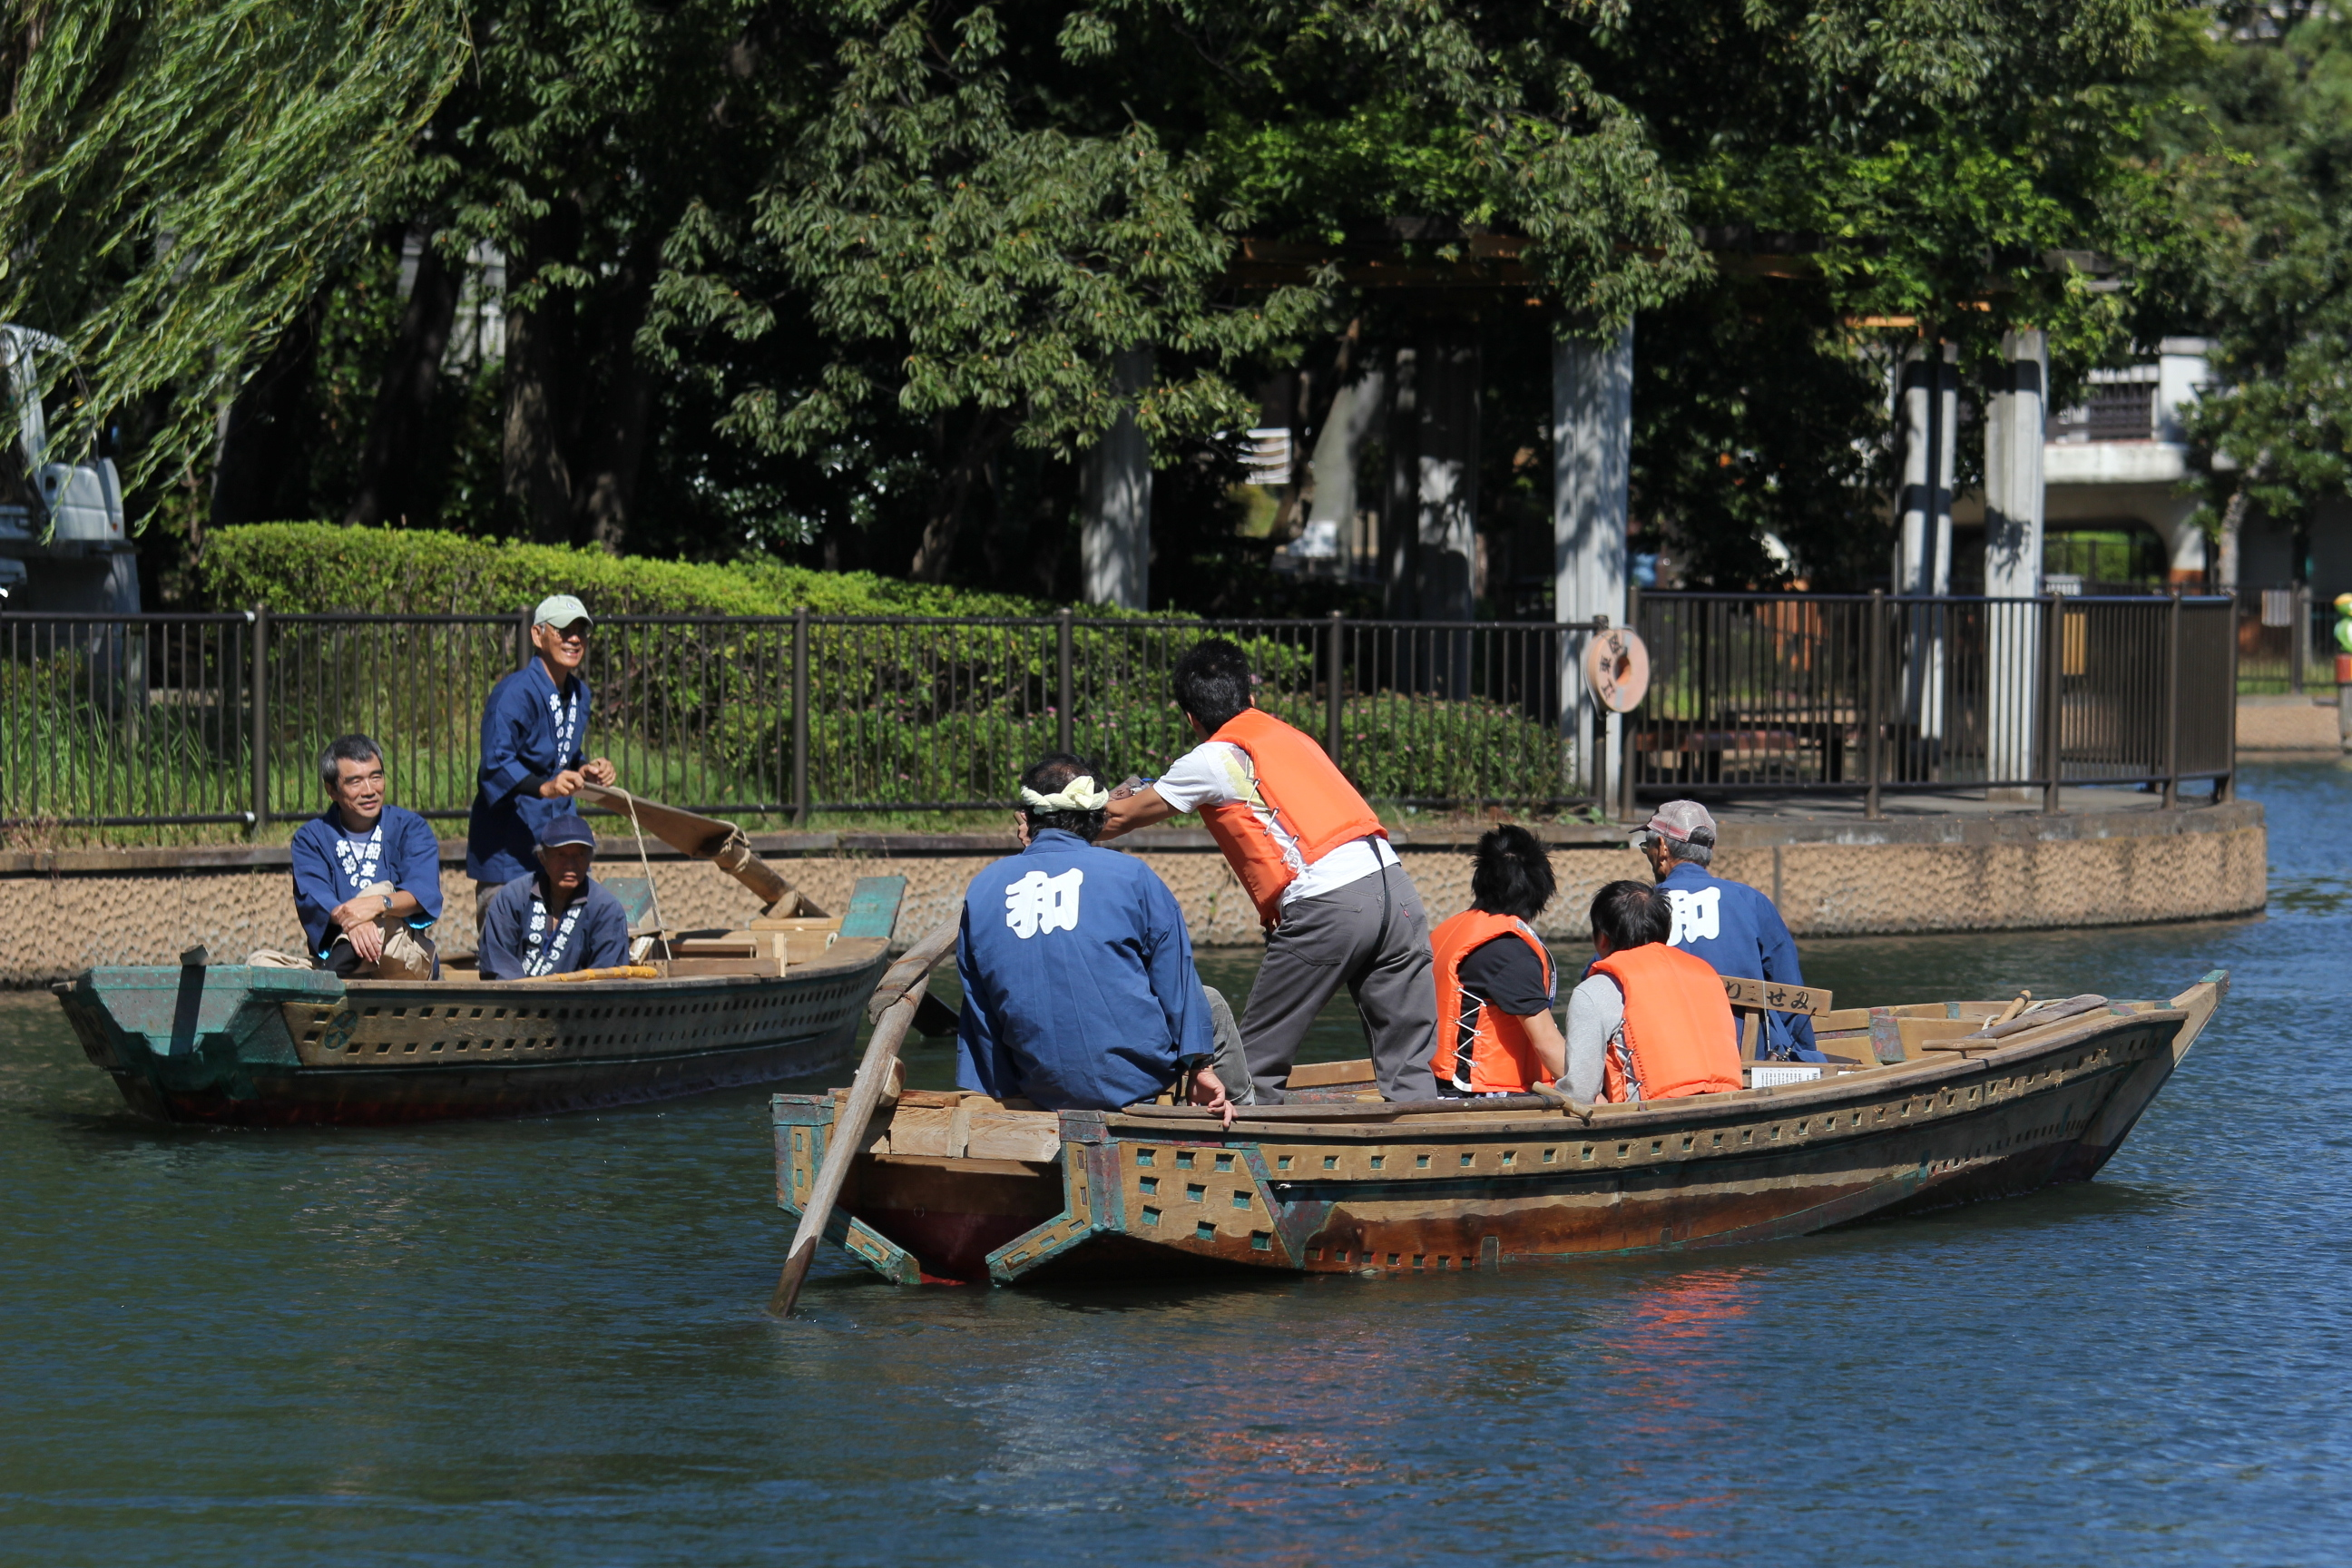 Japanese boats at Yokojikkengawa Shinsui Park